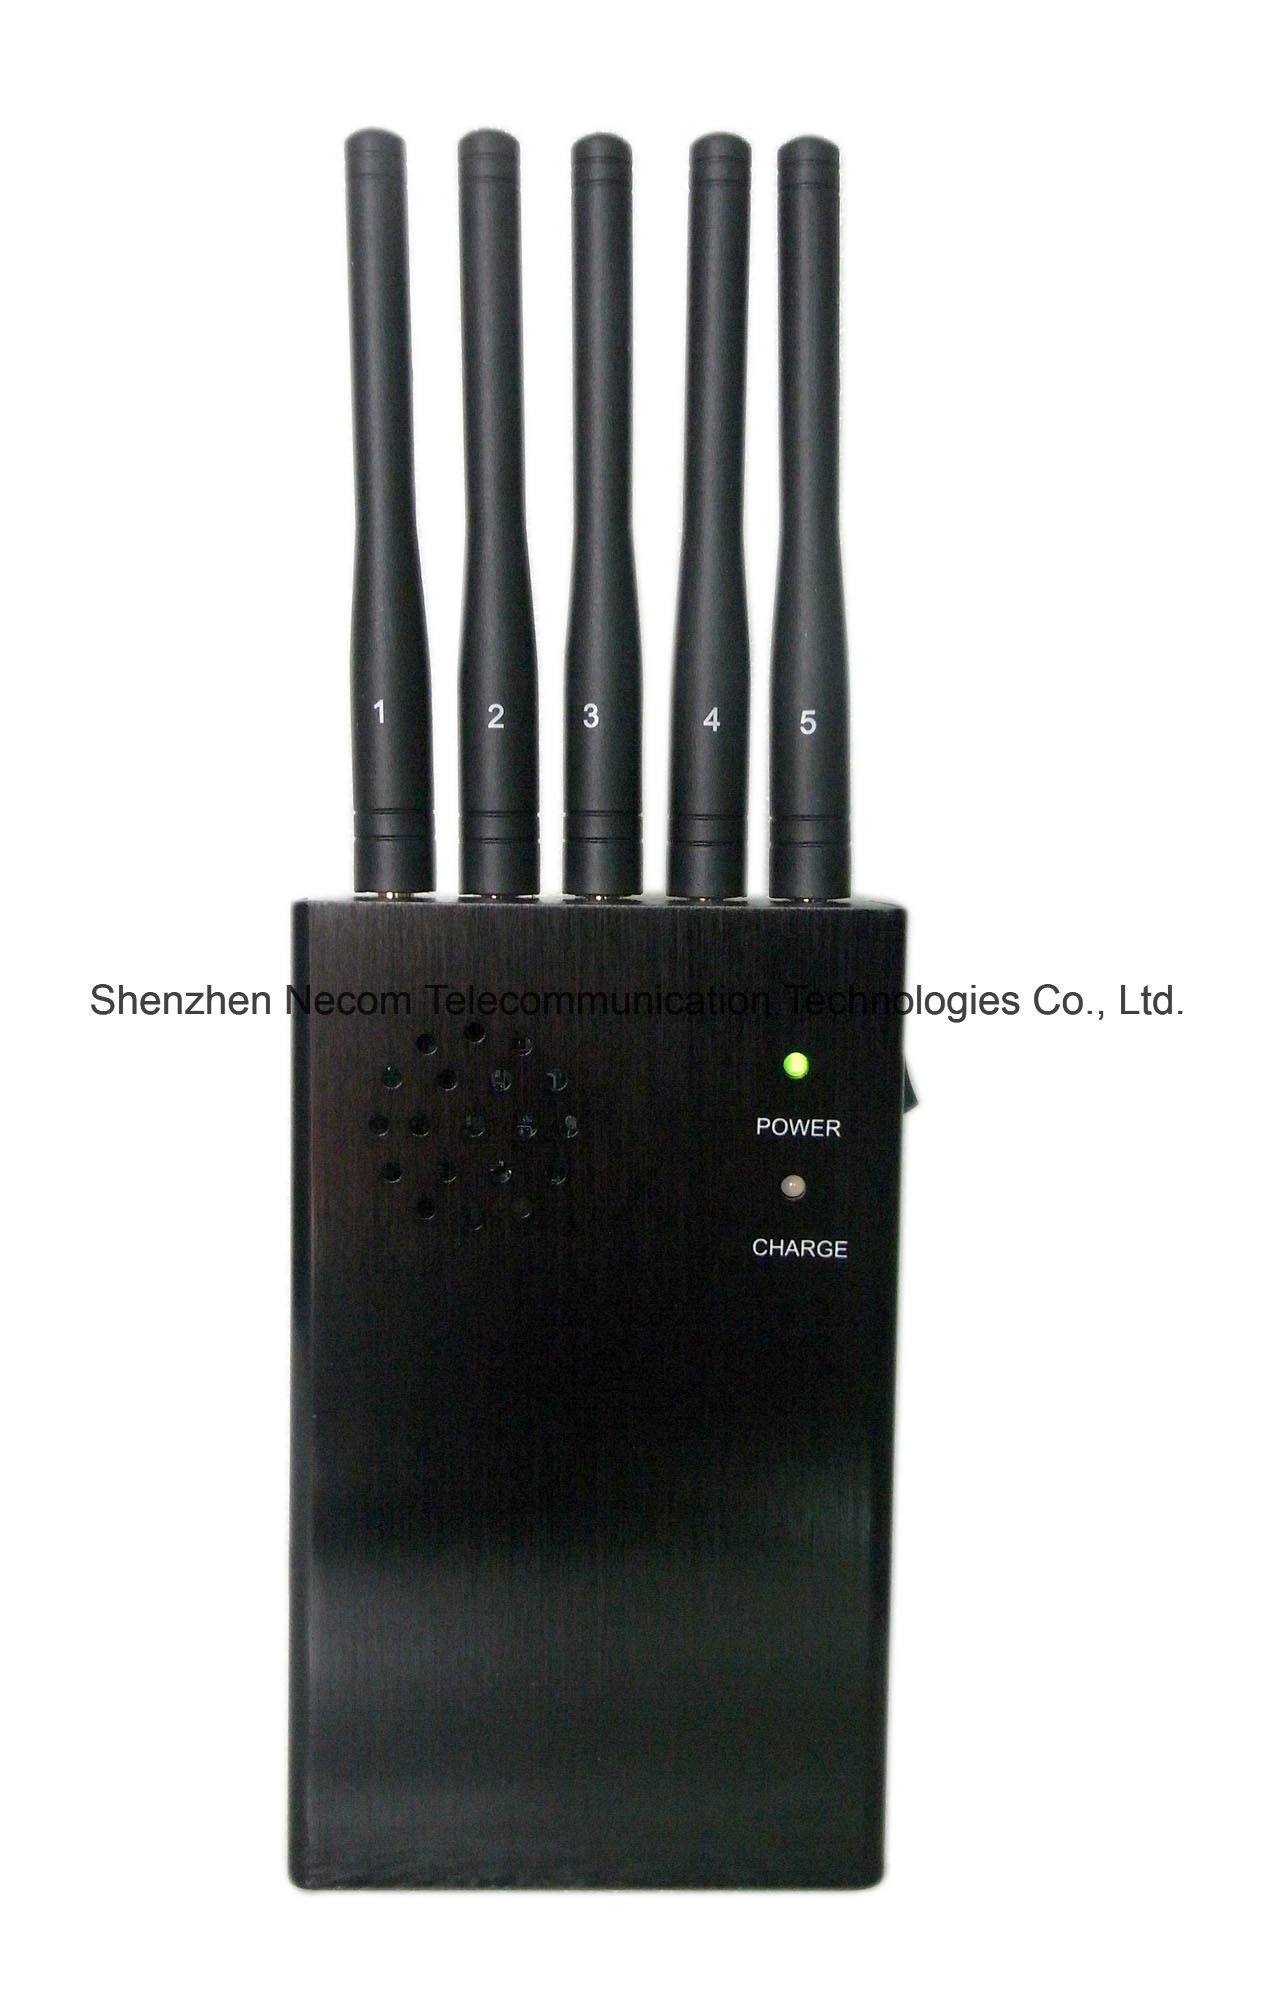 phone radio jammer radio - China GPS and Cell Phone Signal Jammer with Car Charger,Portable 6 Bands Blocker for 3G/4G Cellular Phone,WiFi,GPS,Lojack,Portable GPS Mobile Jammer with Car Charger - China 5 Band Signal Blockers, Five Antennas Jammers